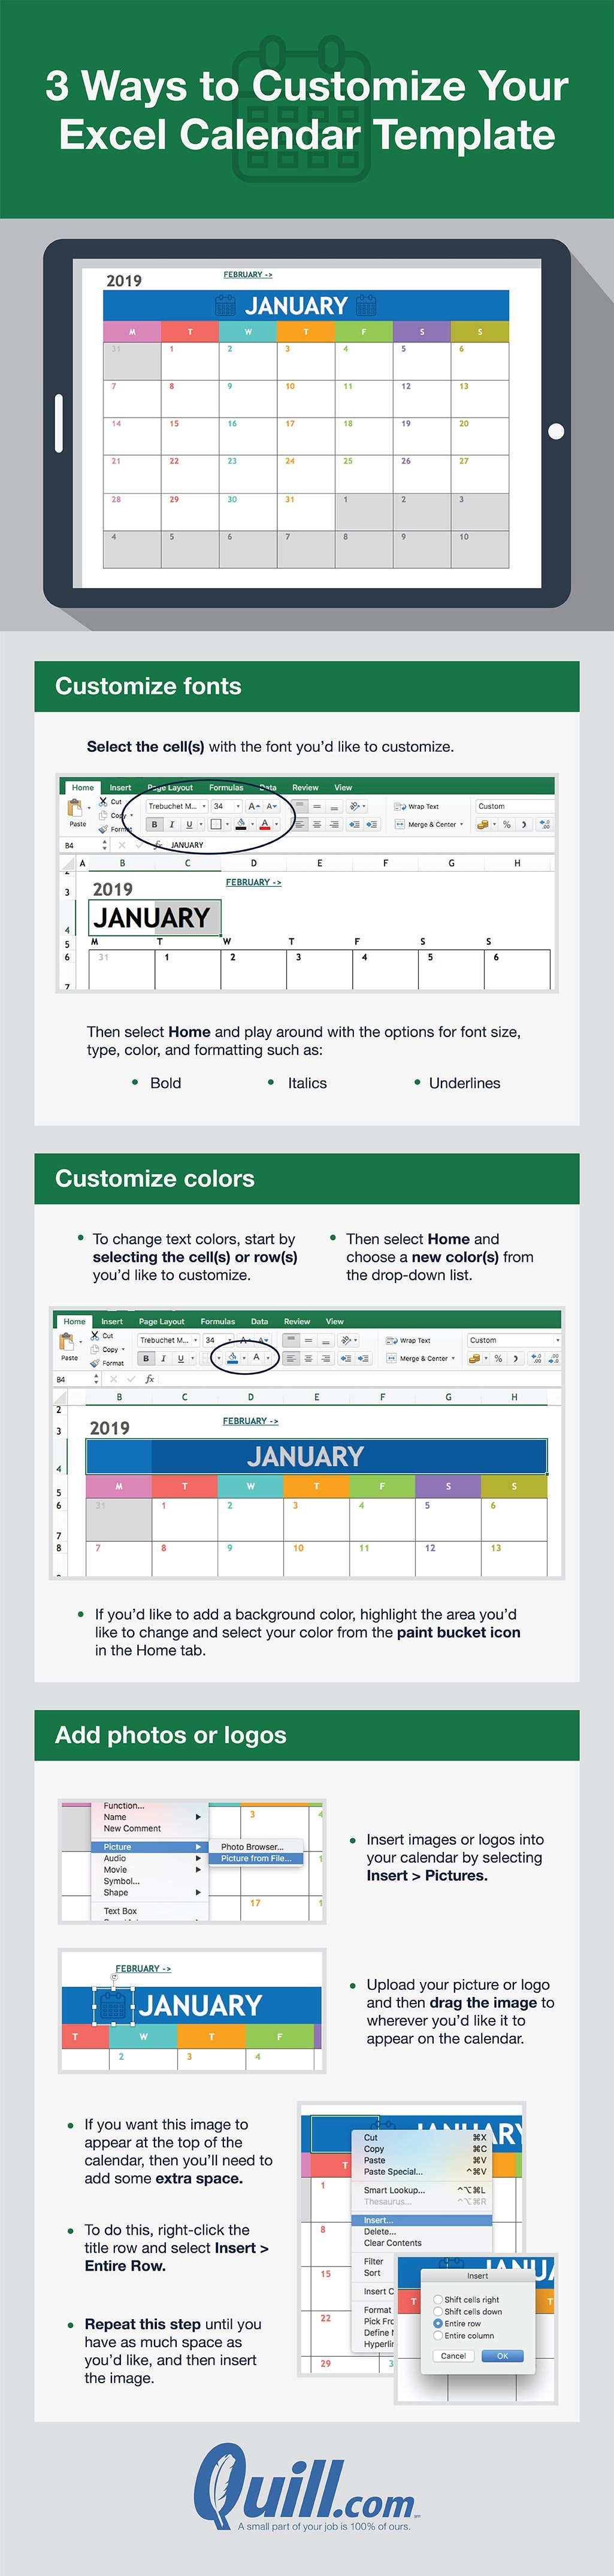 How to make a calendar in excel #infographic